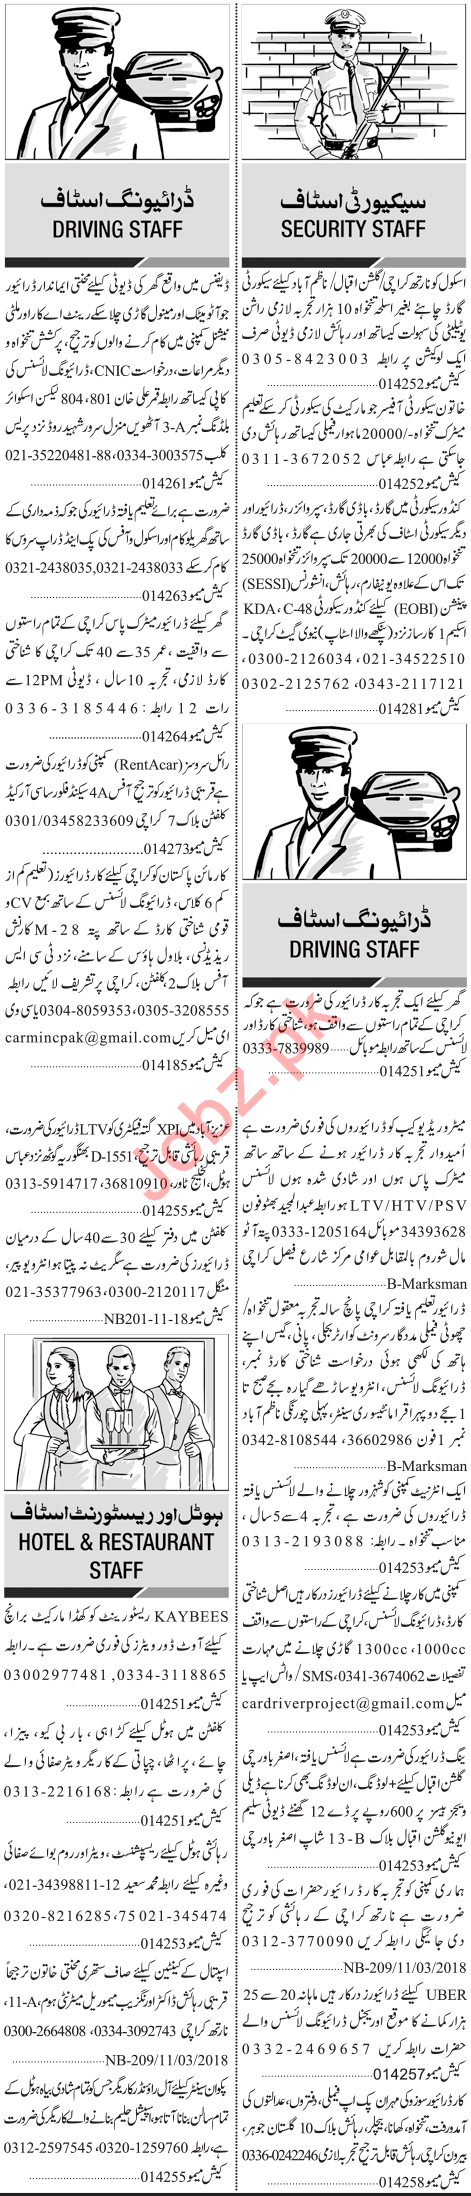 Technical Staff & Industrial Staff Jobs in Karachi